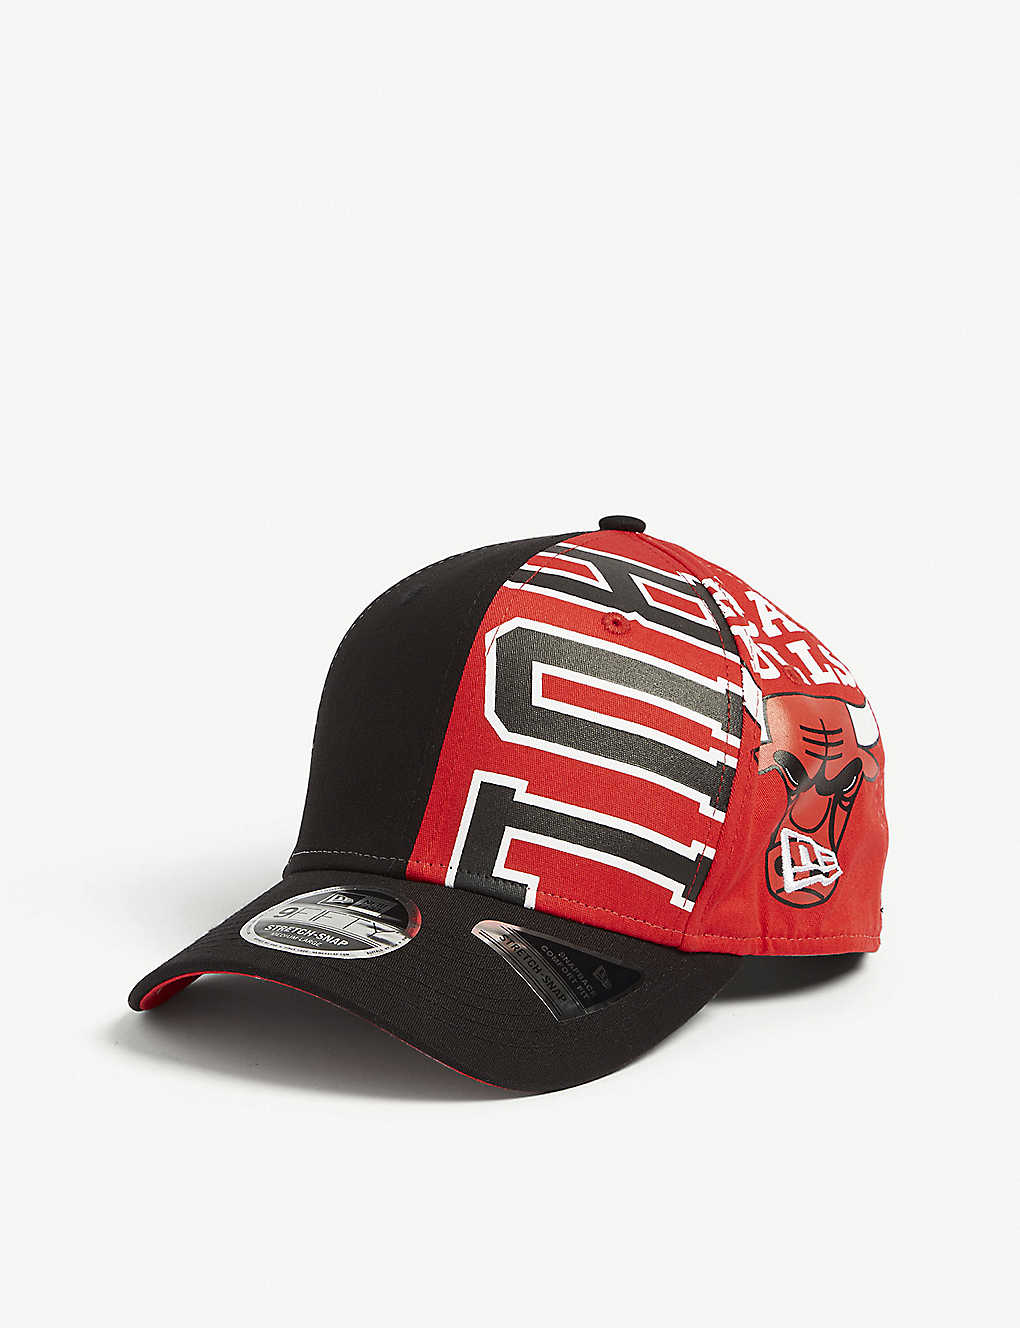 hot sales b4a93 5f843 Chicago Bulls 9FIFTY snapback cap - Black red ...